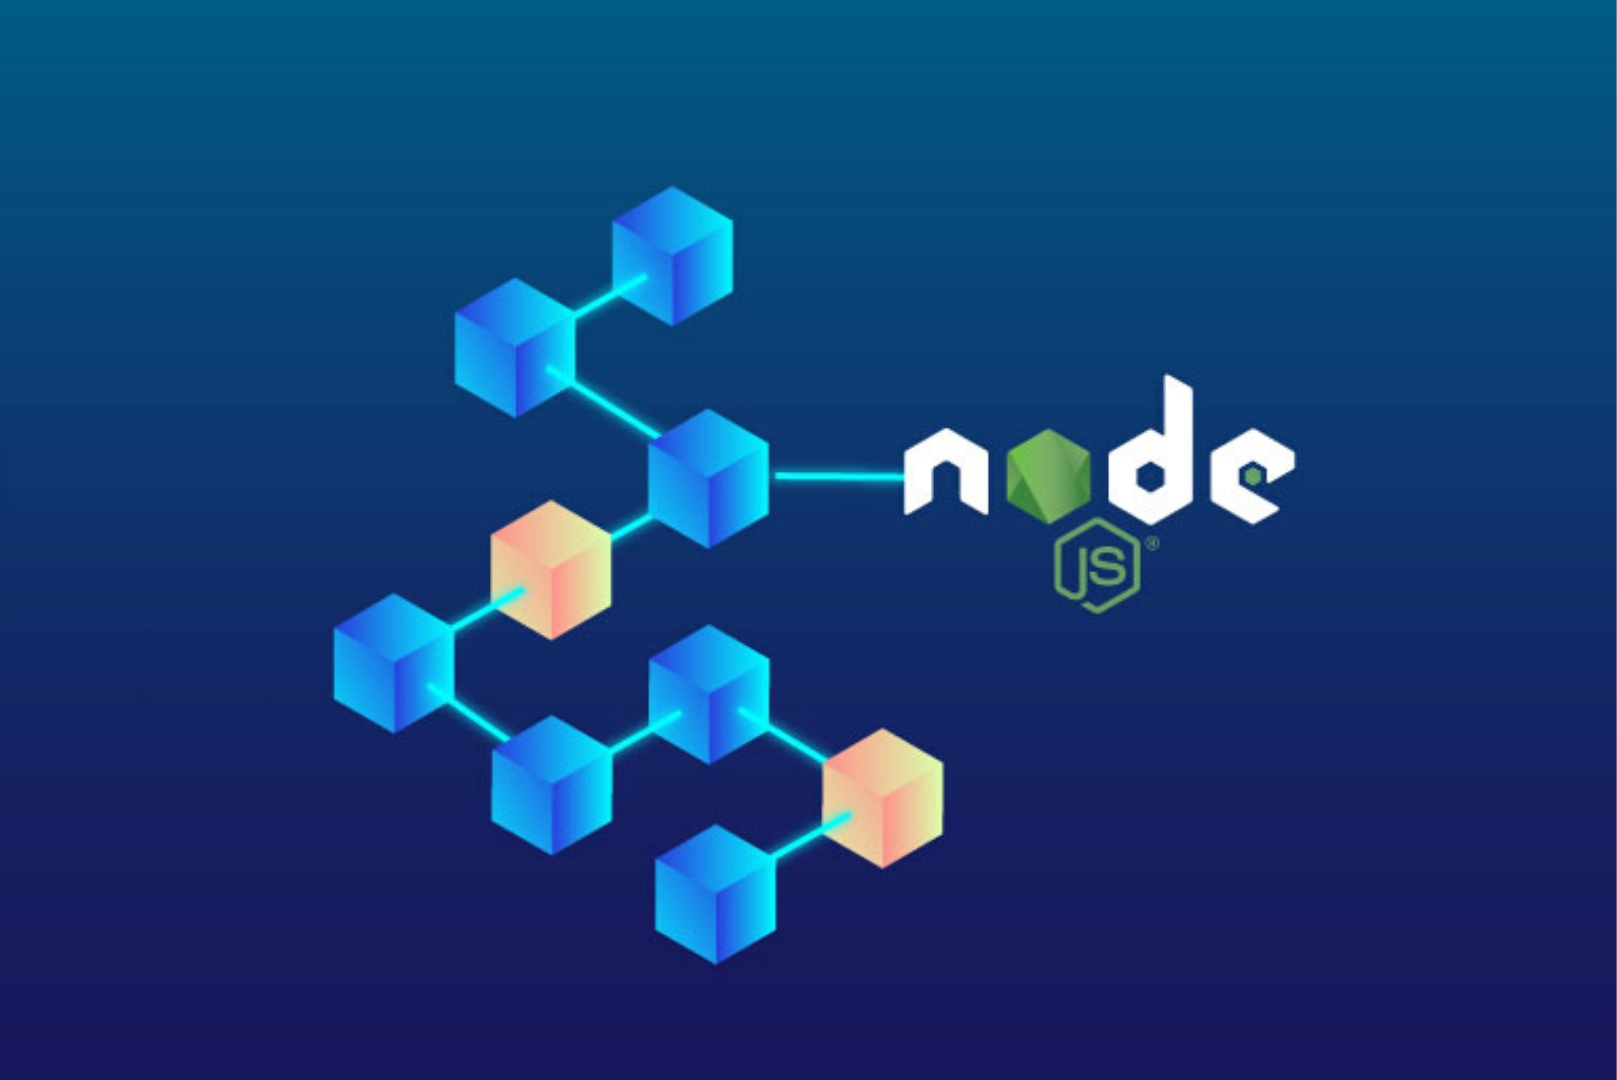 Microservices architecture built with node.js